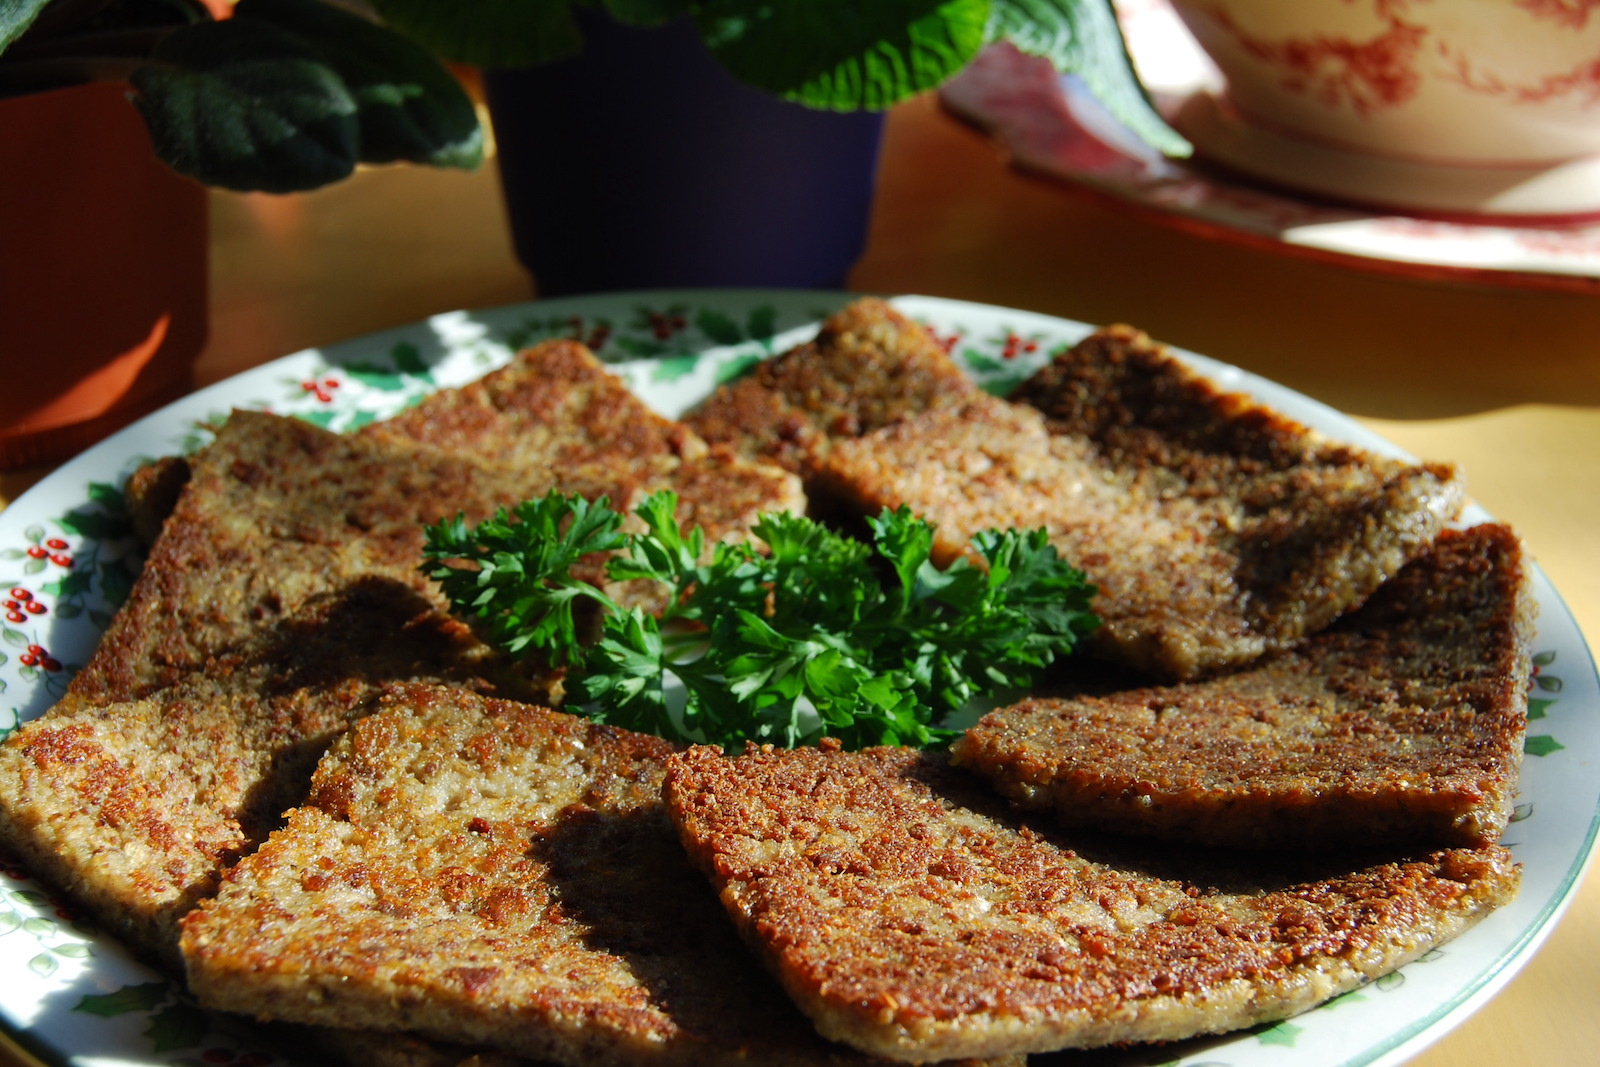 Fried liver pudding is a long-standing South Carolina breakfast dish